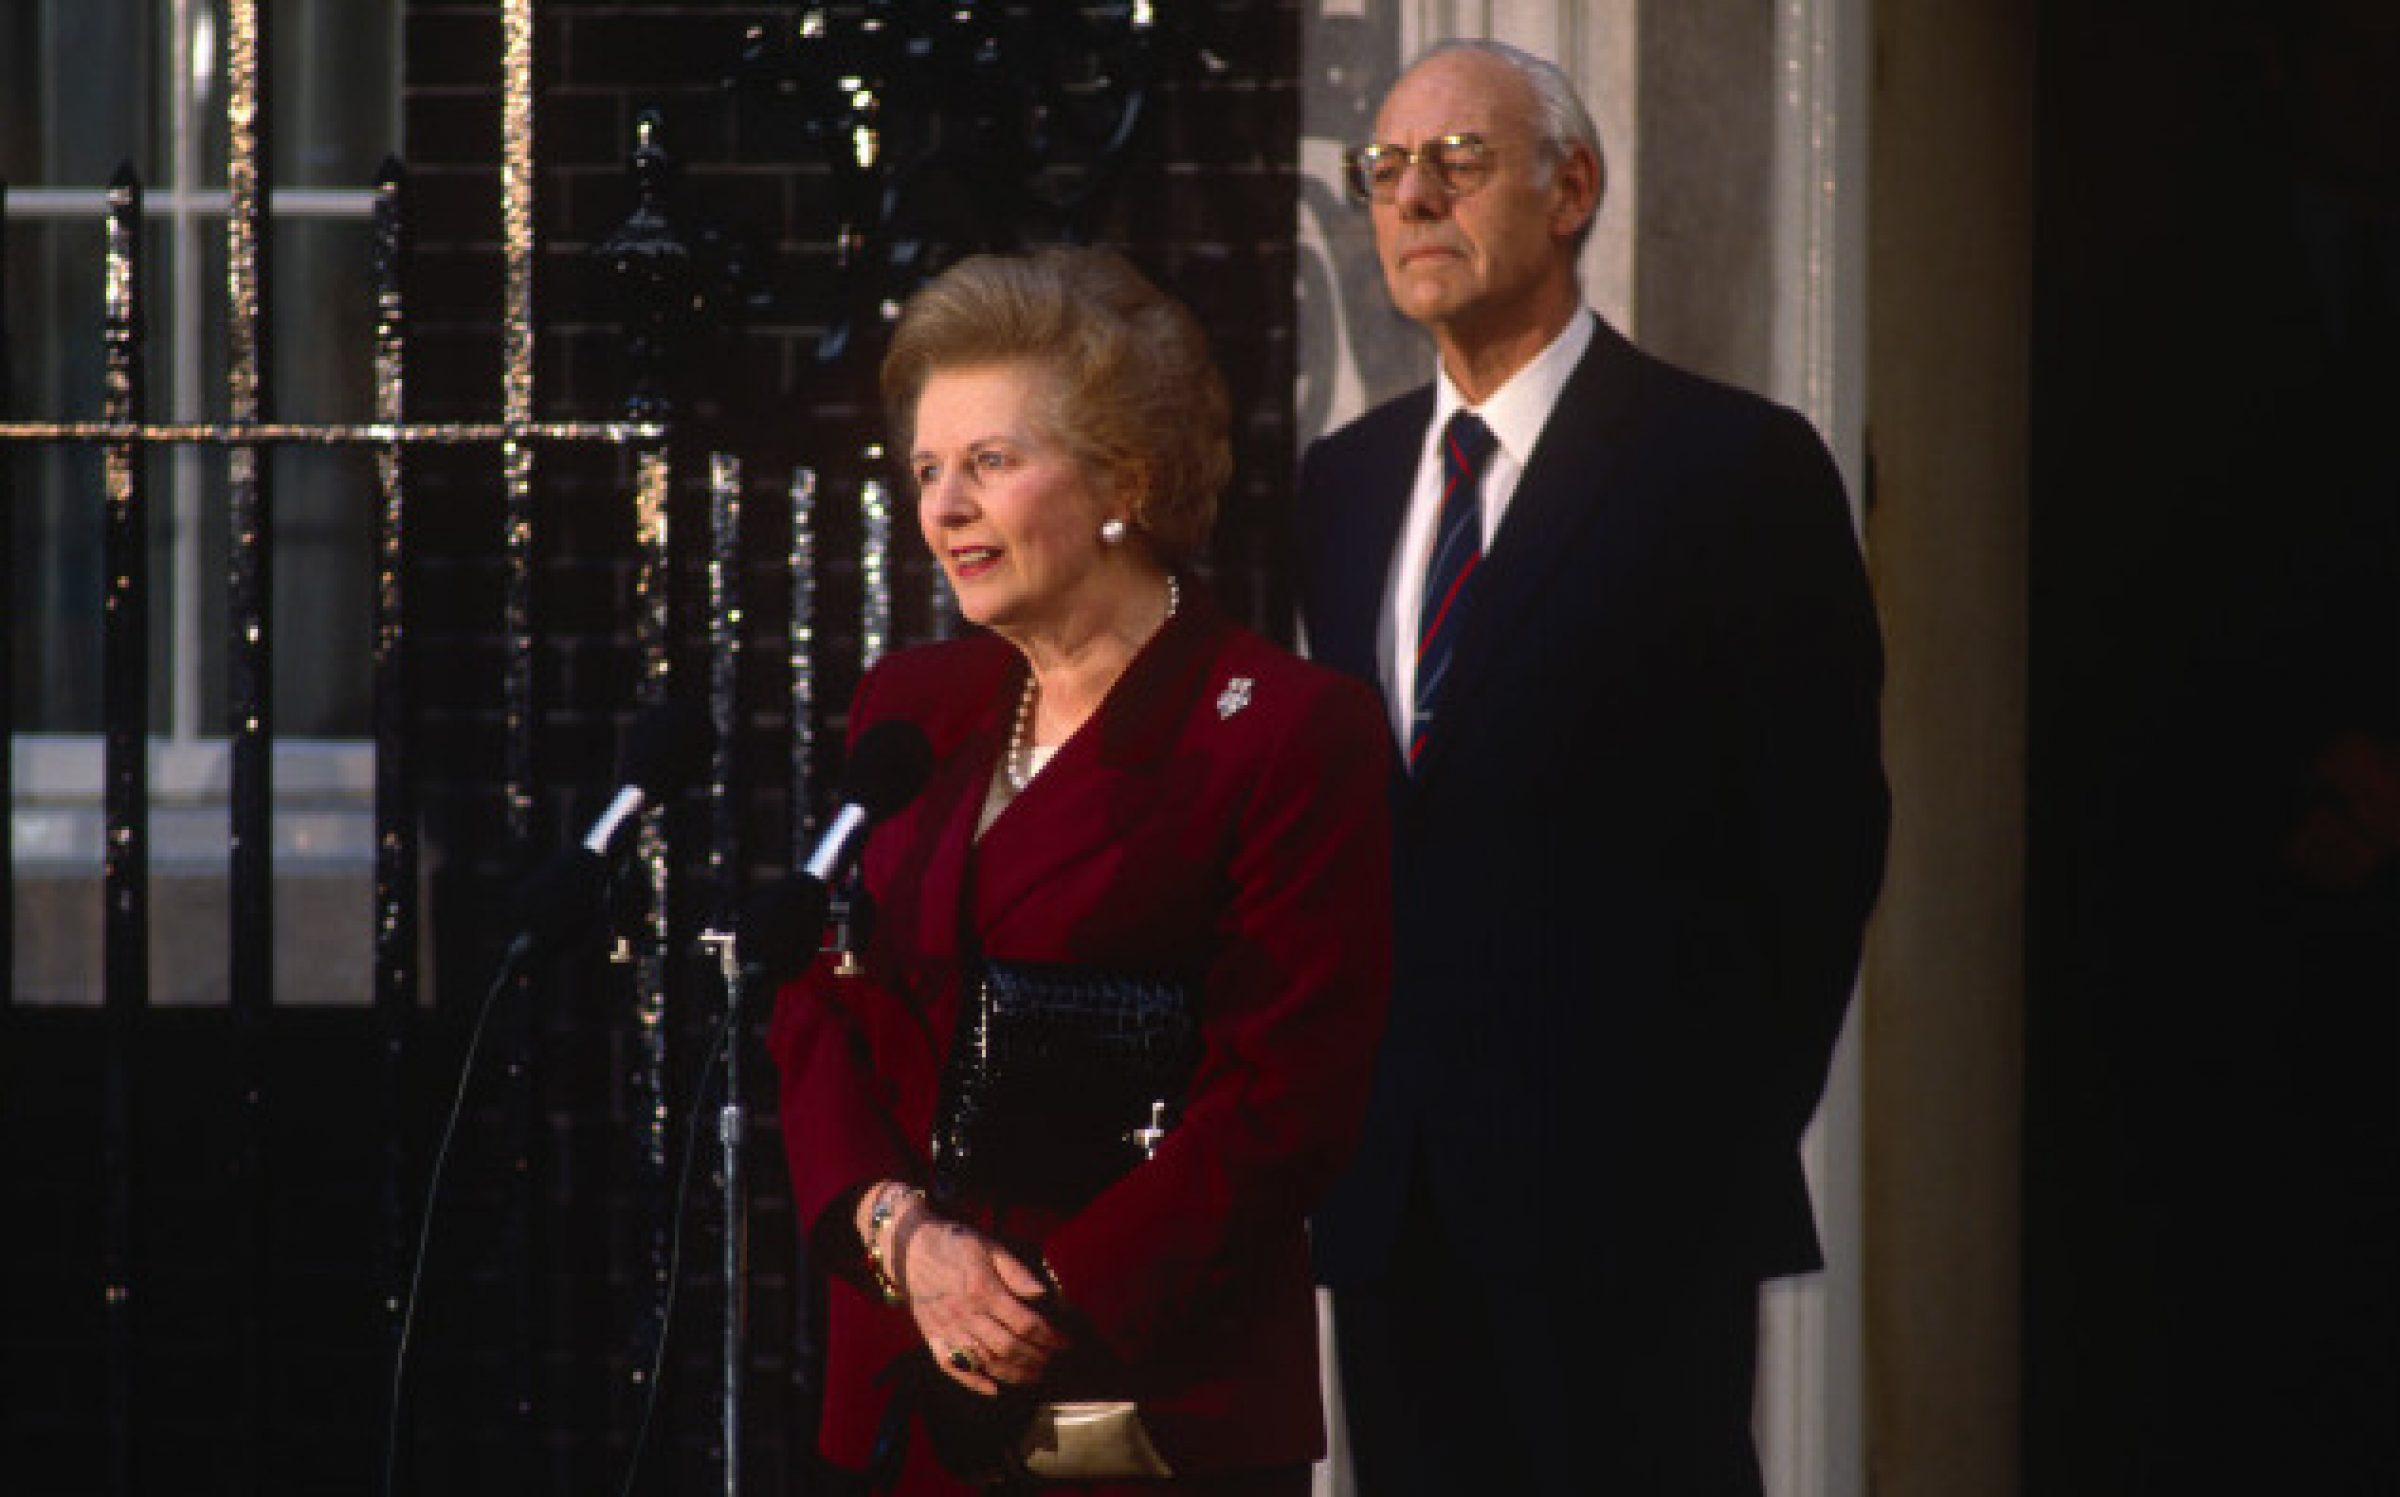 British Prime Minister, Margaret Thatcher's political career of 11 years ends emotionally on the steps of 10 Downing Street after being deposed in a leadership challenge, on 28th November 1990 in London, England. Standing close behind her is Thatcher's husband and lifelong confidente, Dennis. (Photo by Richard Baker / In Pictures via Getty Images)